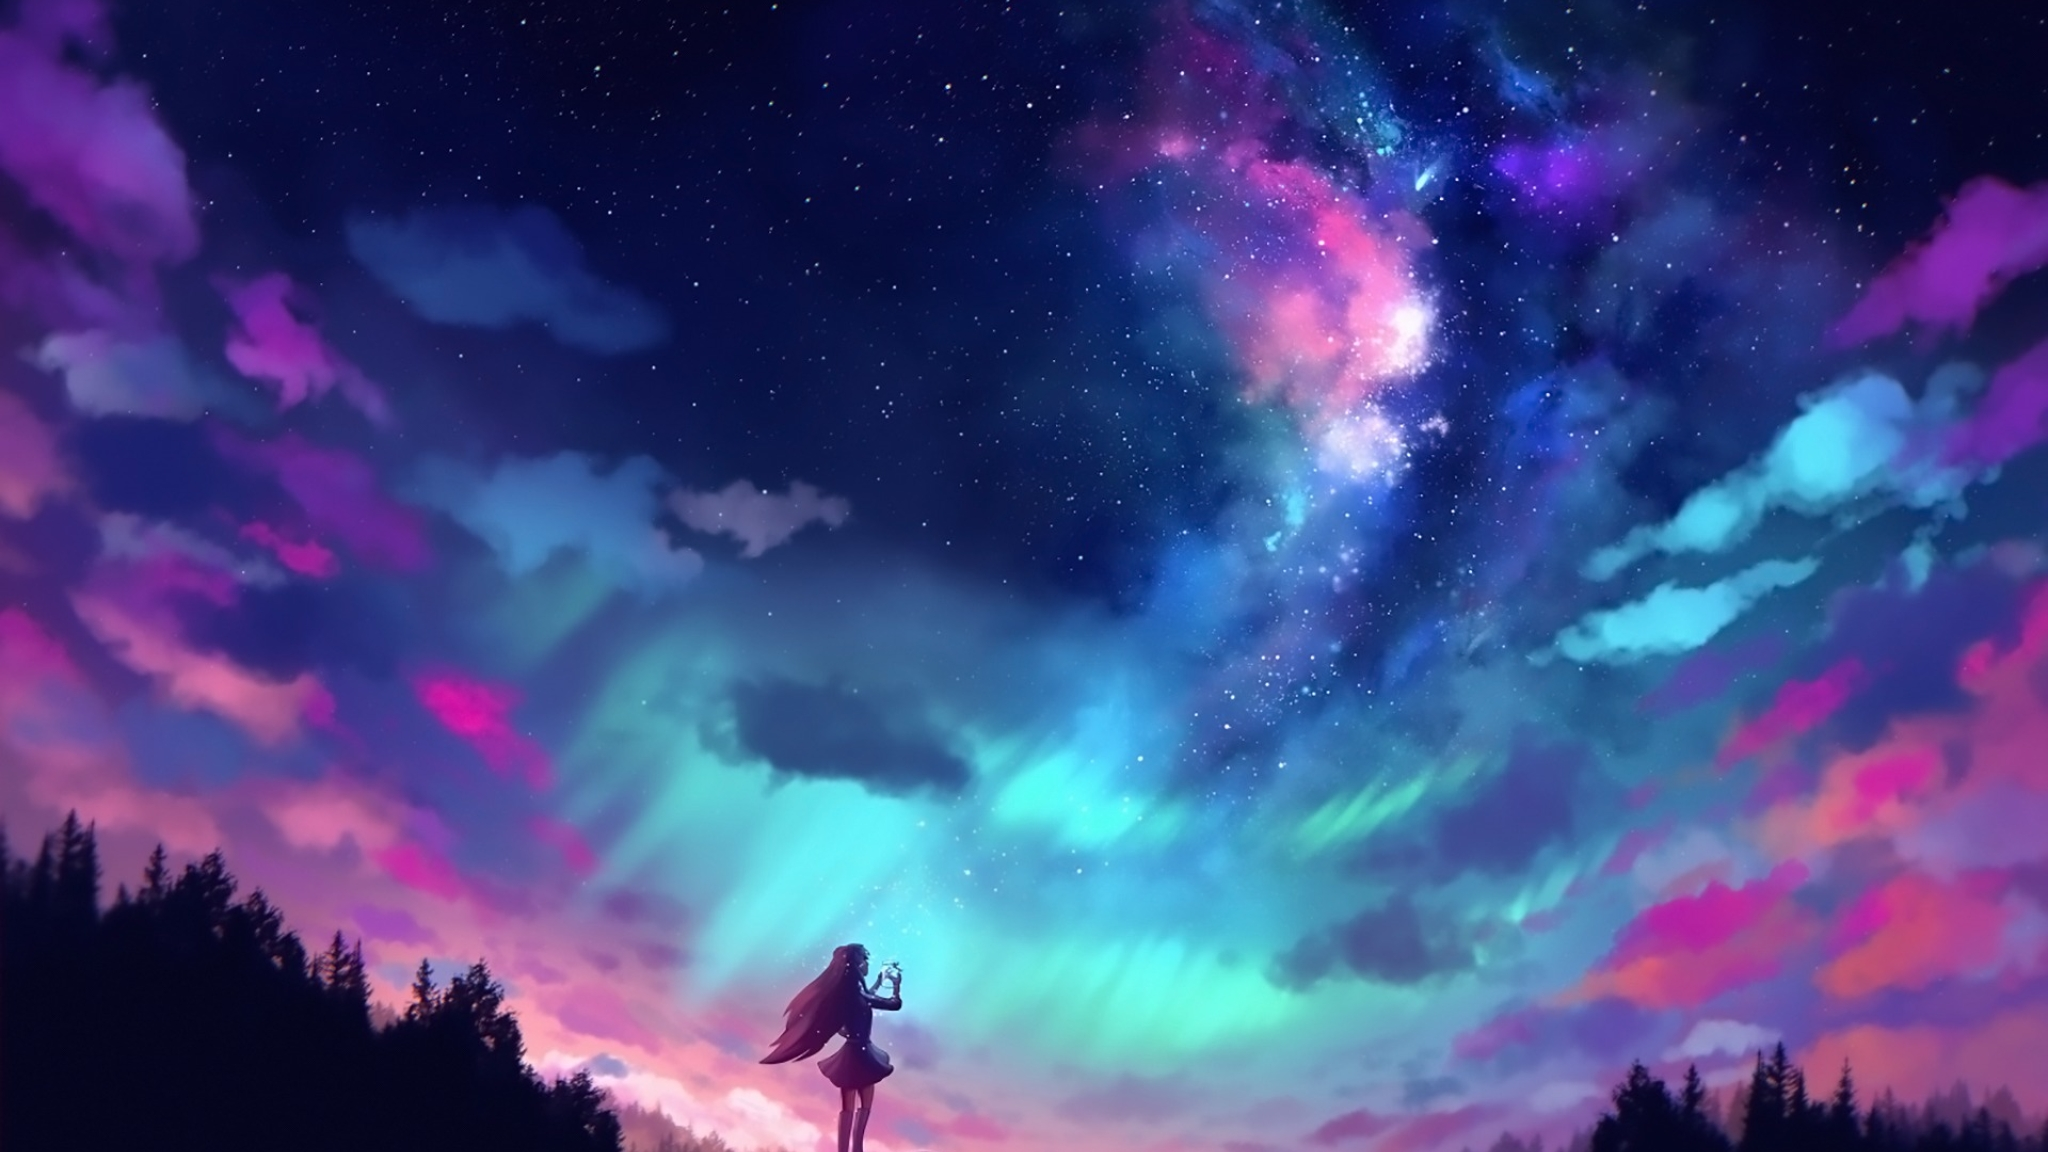 anime girl and colorful sky full hd wallpaper